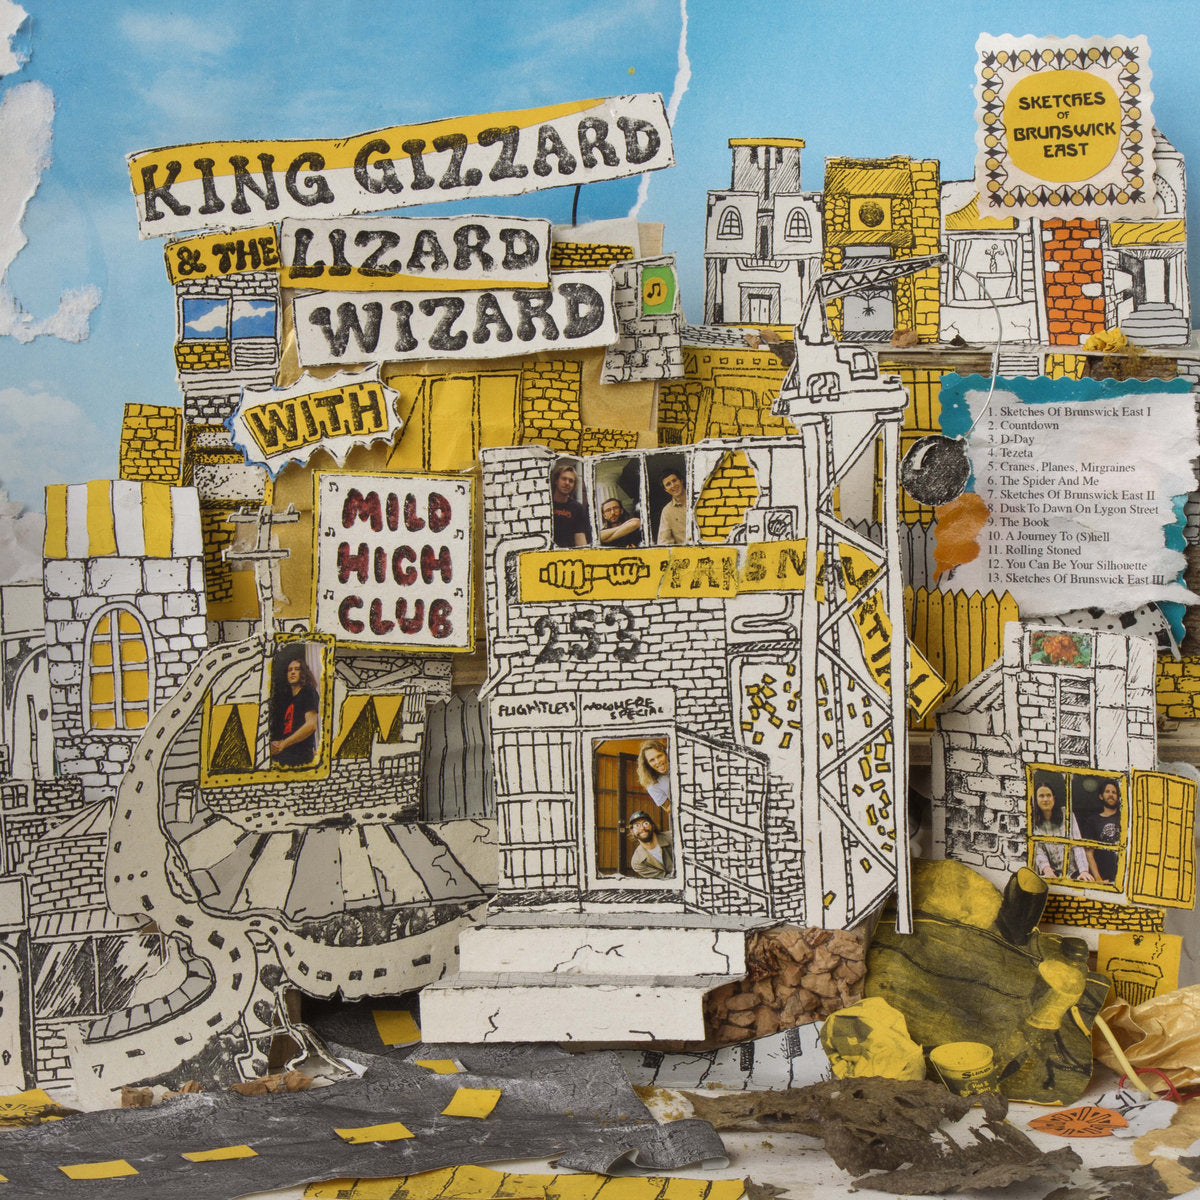 King Gizzard & The Lizard Wizard with Mild High Club ‎– Sketches Of Brunswick East (Euro Press)